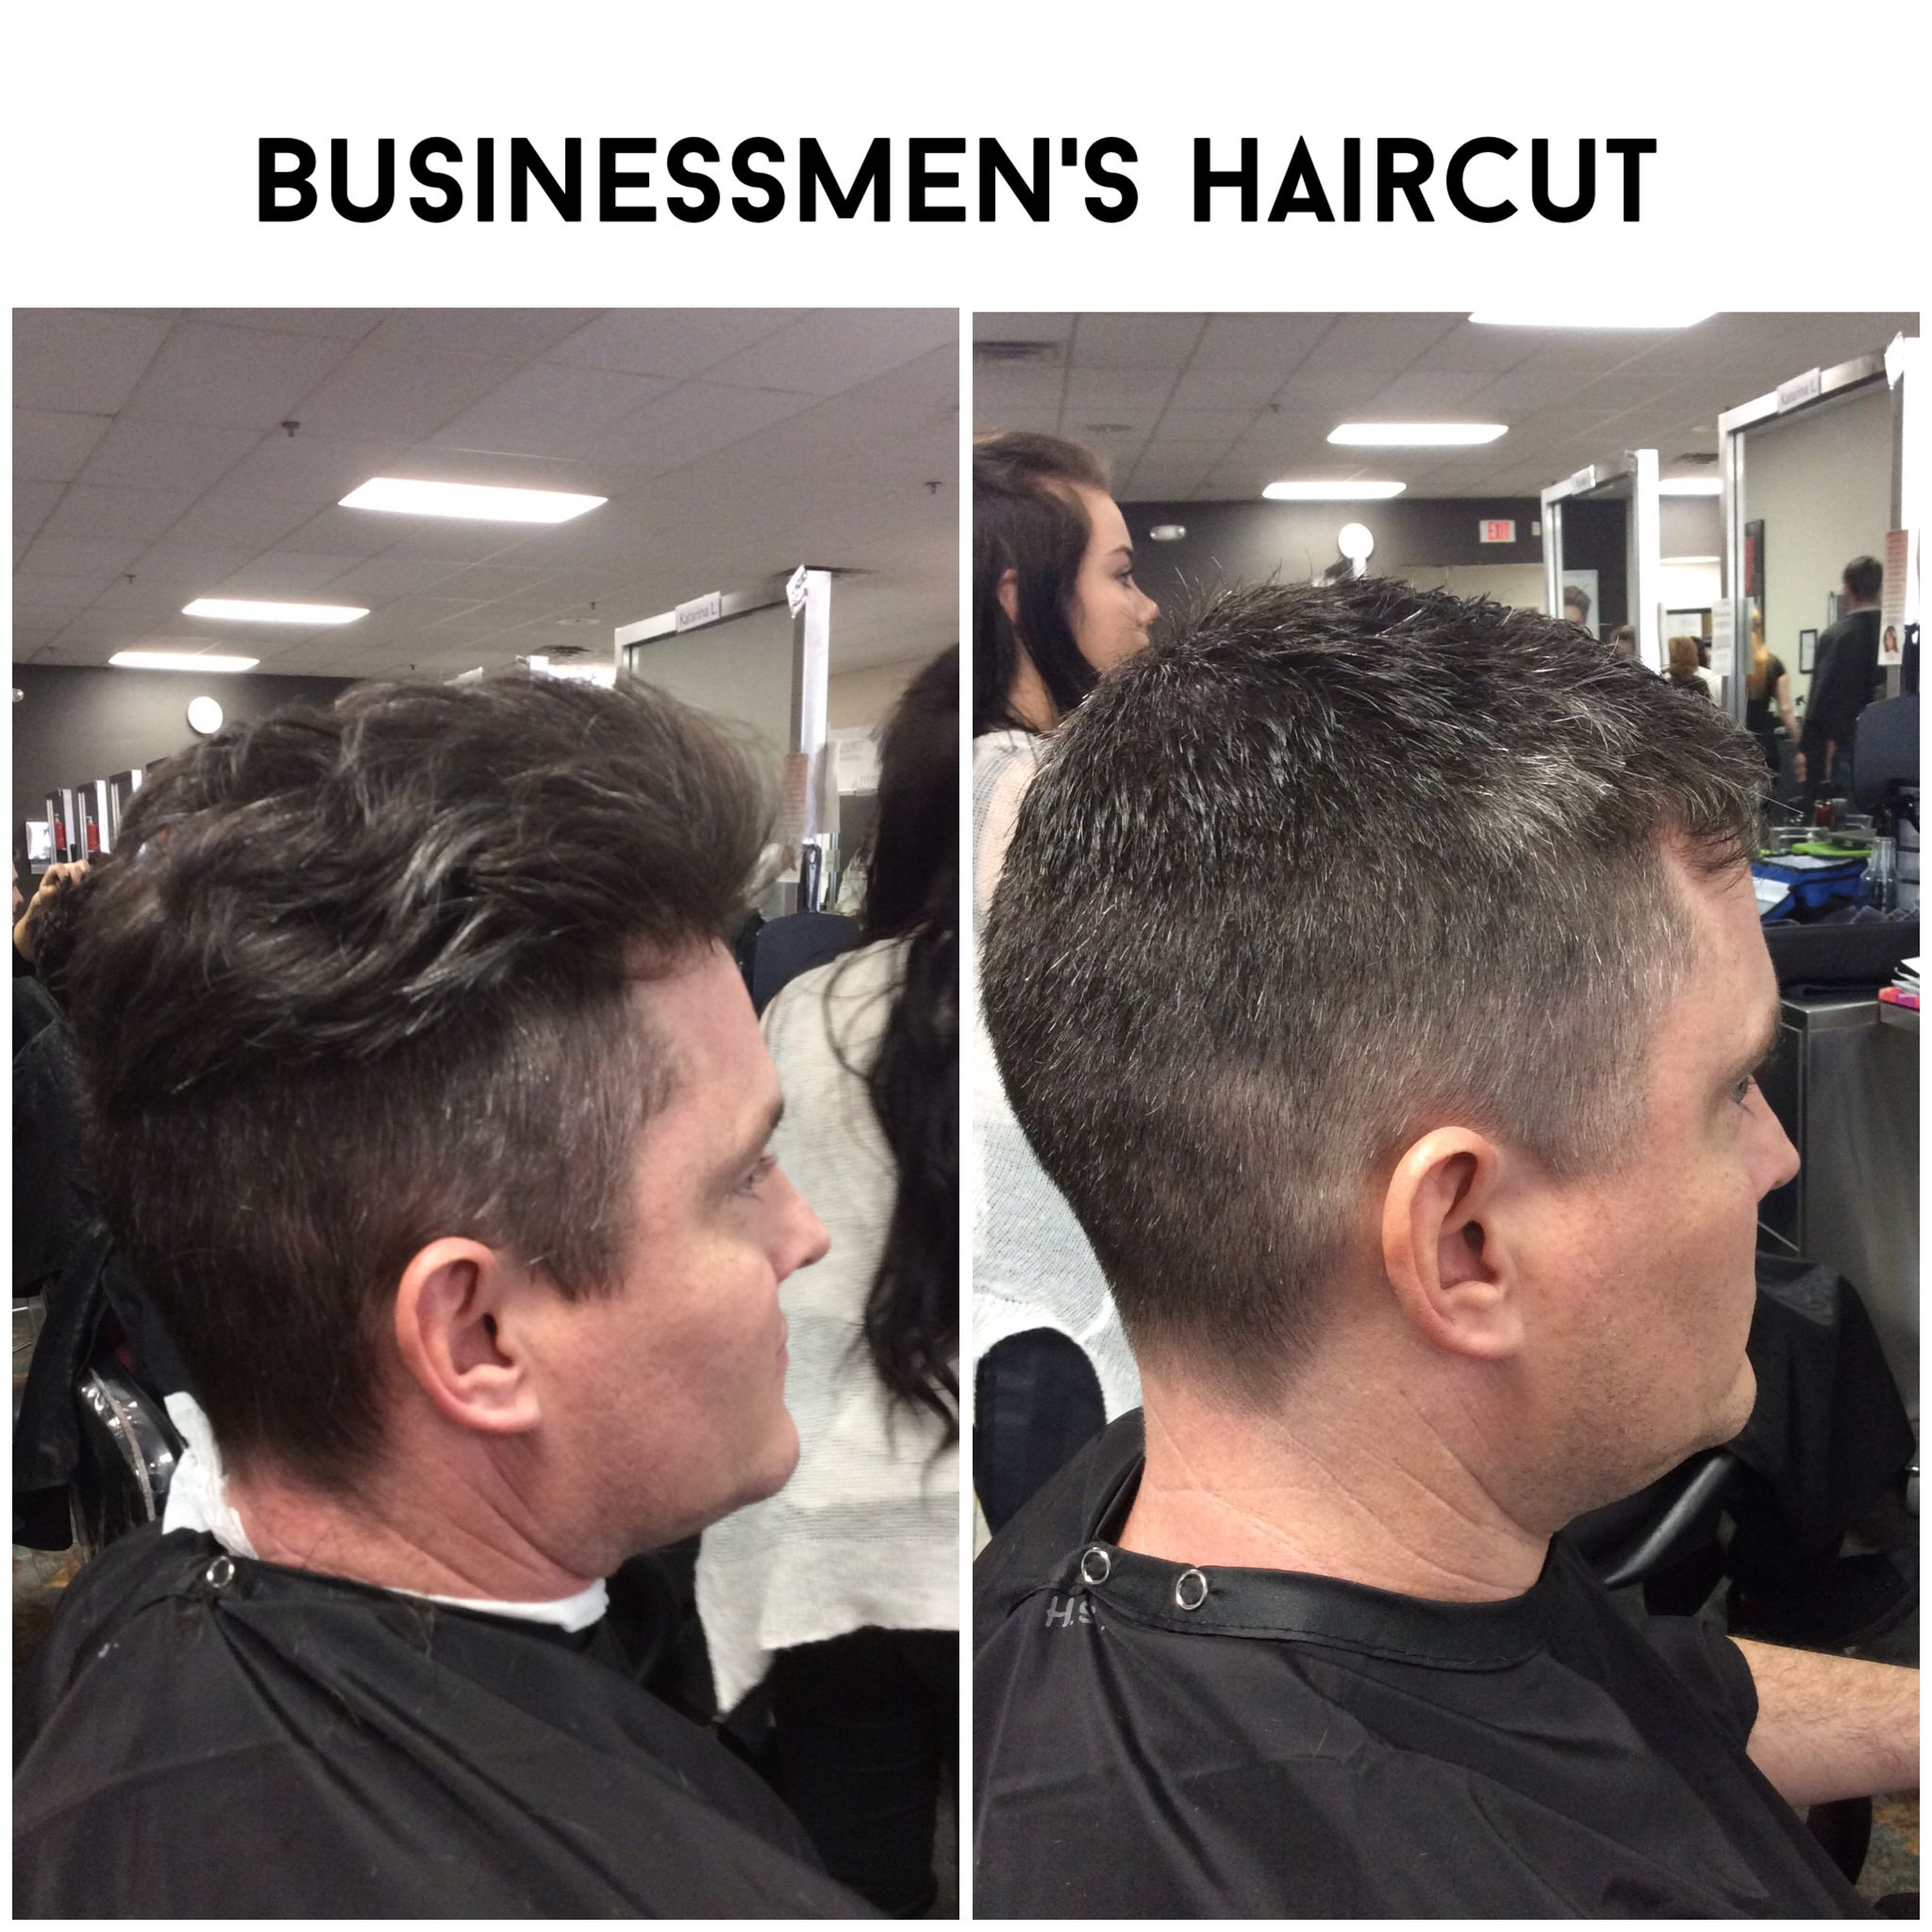 1 Up To 4 To Finger Length Haircuts Hair Cuts Finger Scissors